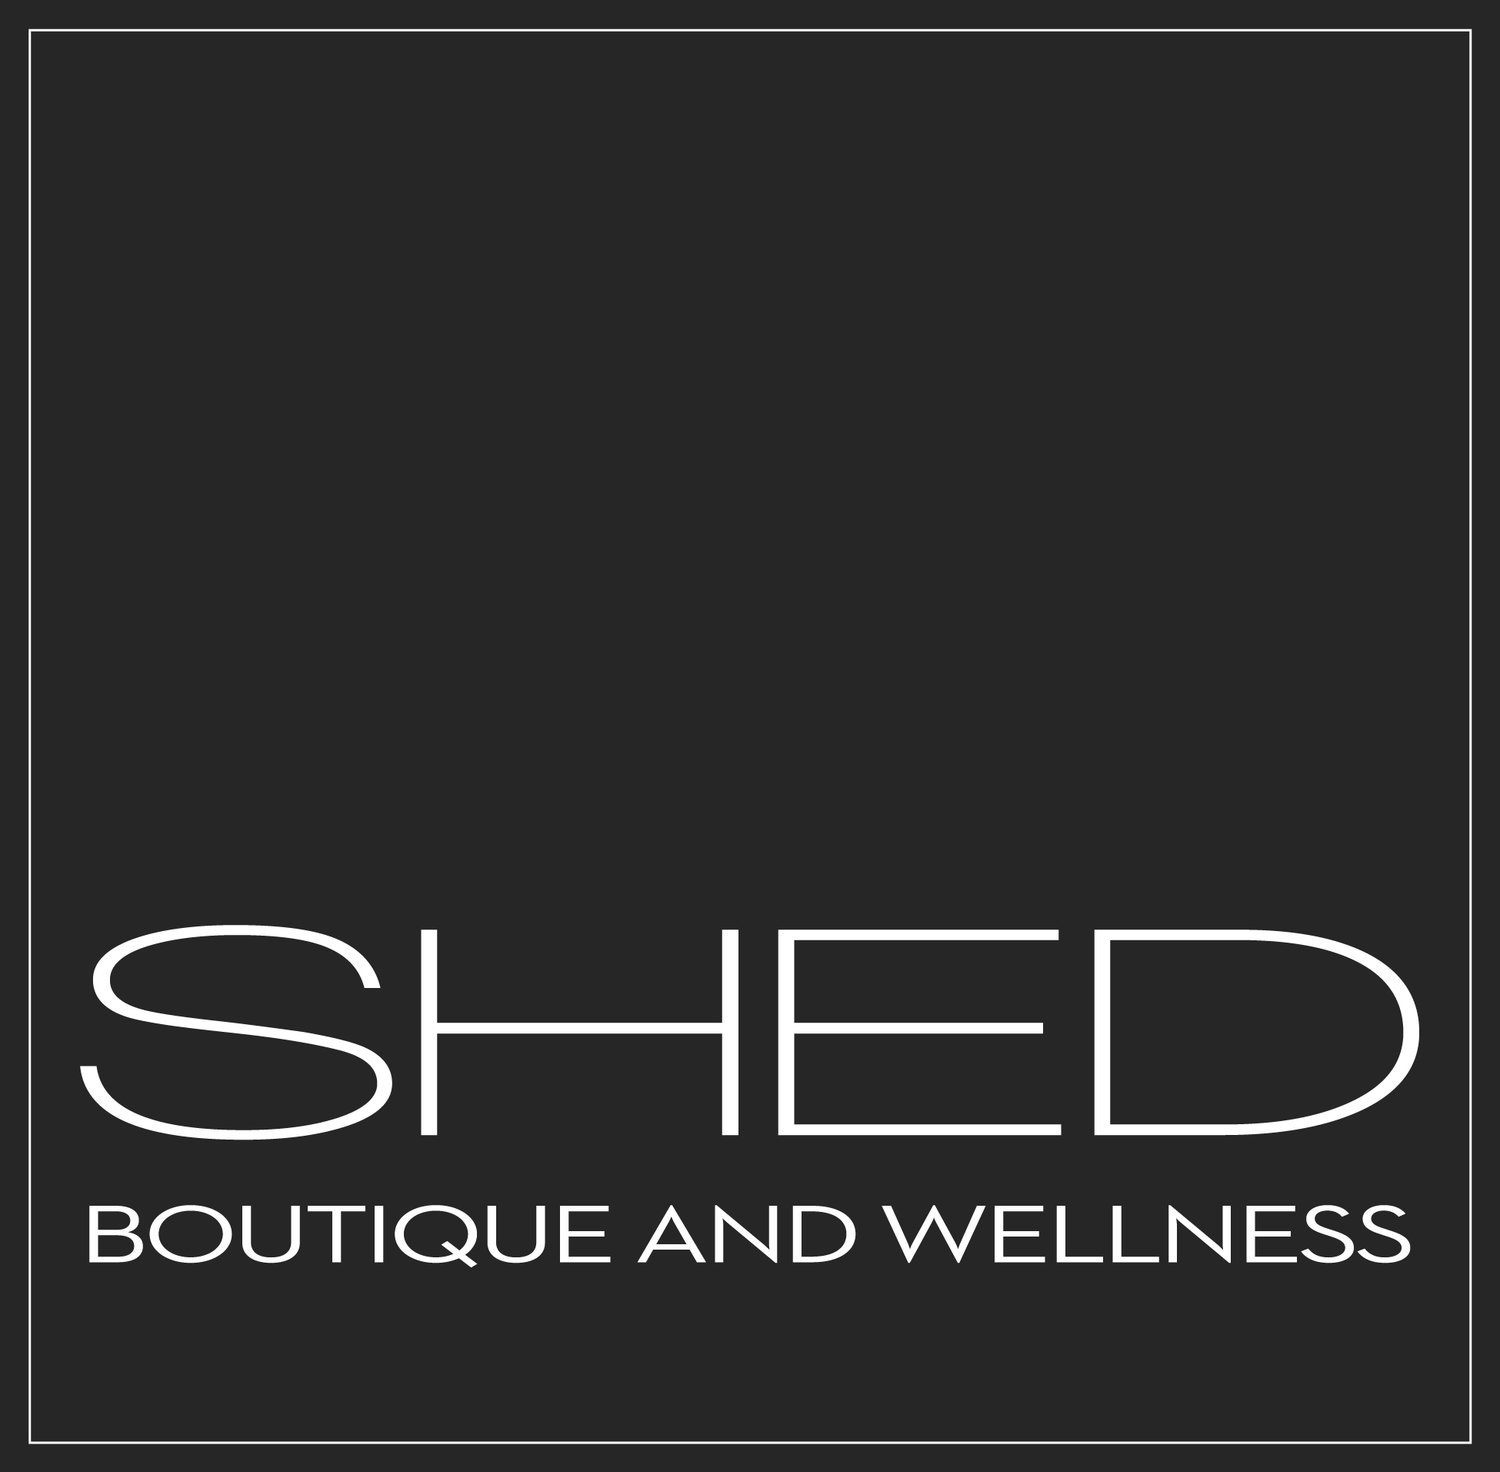 Shed Boutique & Wellness-Chagrin Falls